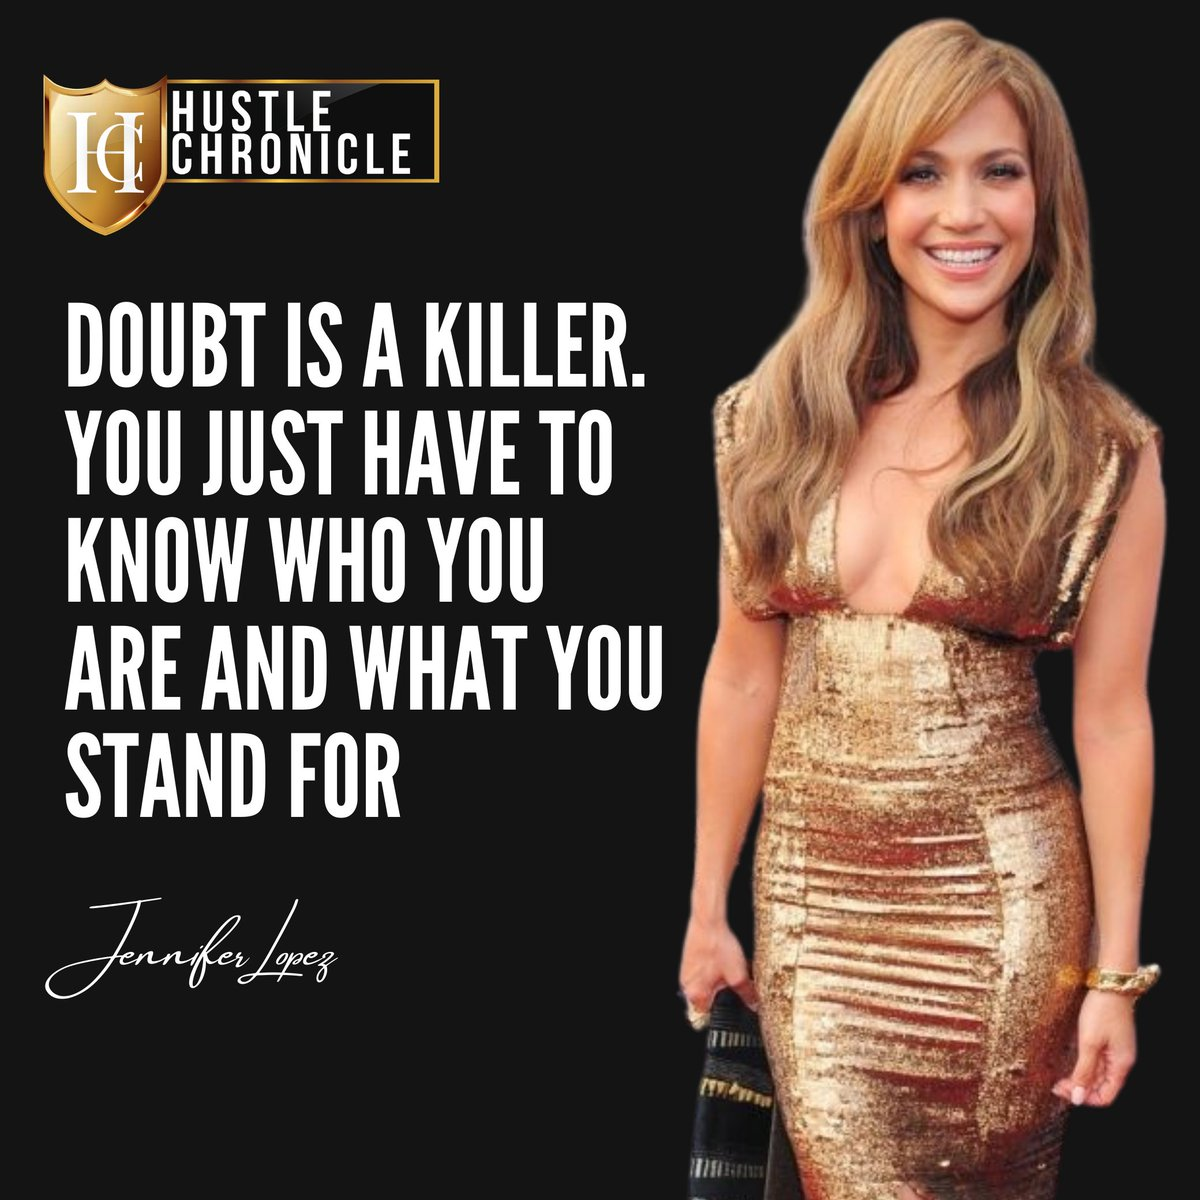 Doubt is a killer. you just have to know who you are and what you stand for #hustlechronicle #news #Motivation #motivational #QuoteOfTheDay #InspirationalQuotes#jenniferlopez #jlofashion #jenniferlopezforever